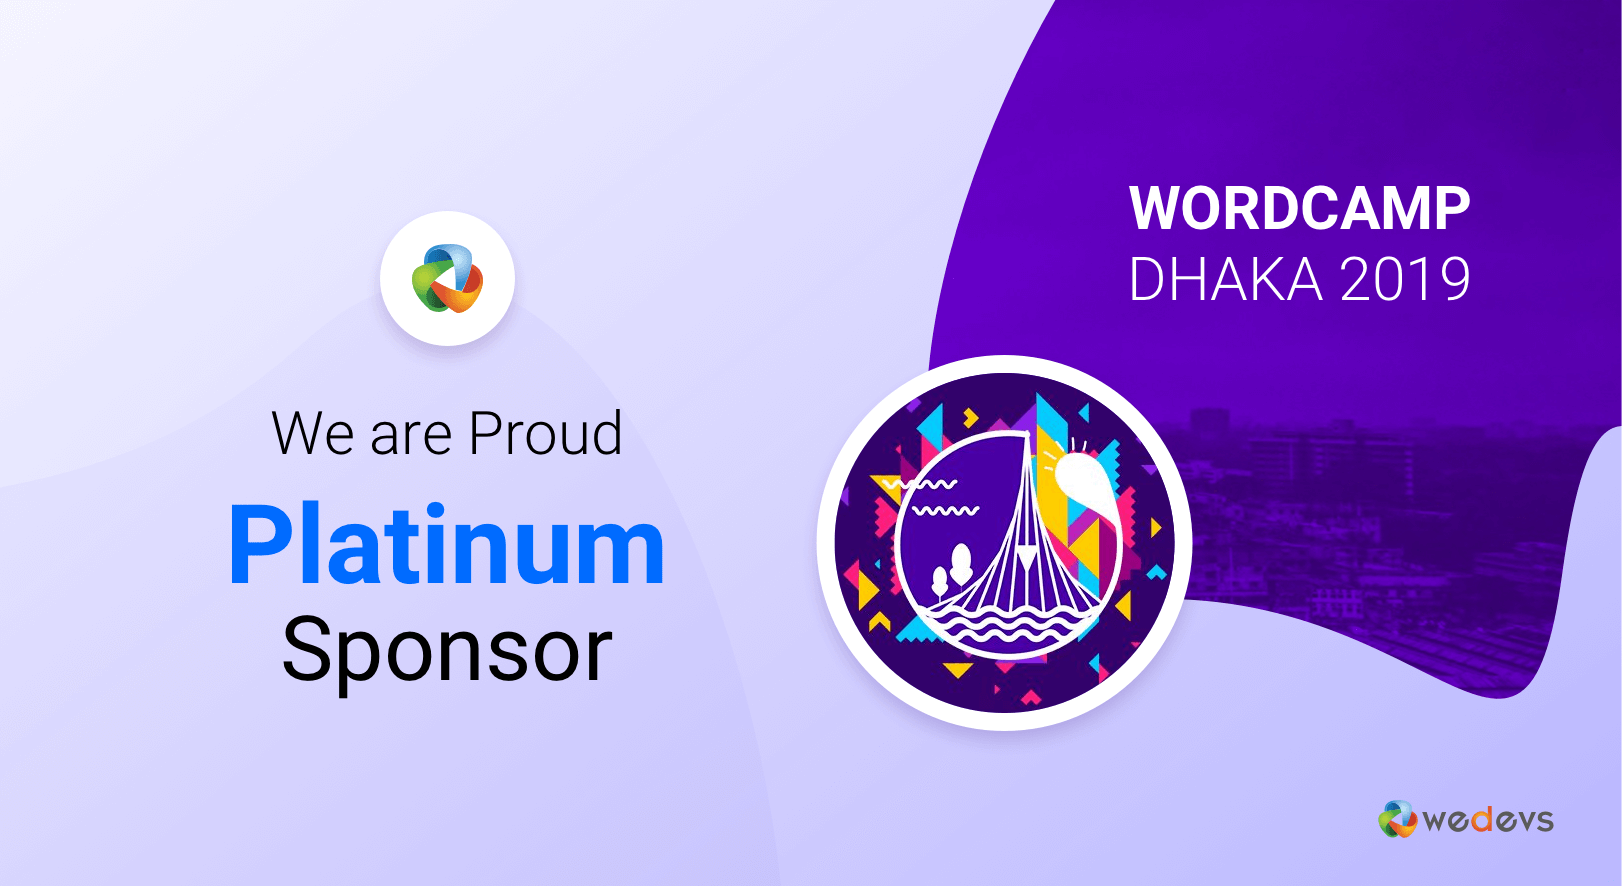 weDevs is the Proud Platinum Sponsor of WordCamp Dhaka 2019